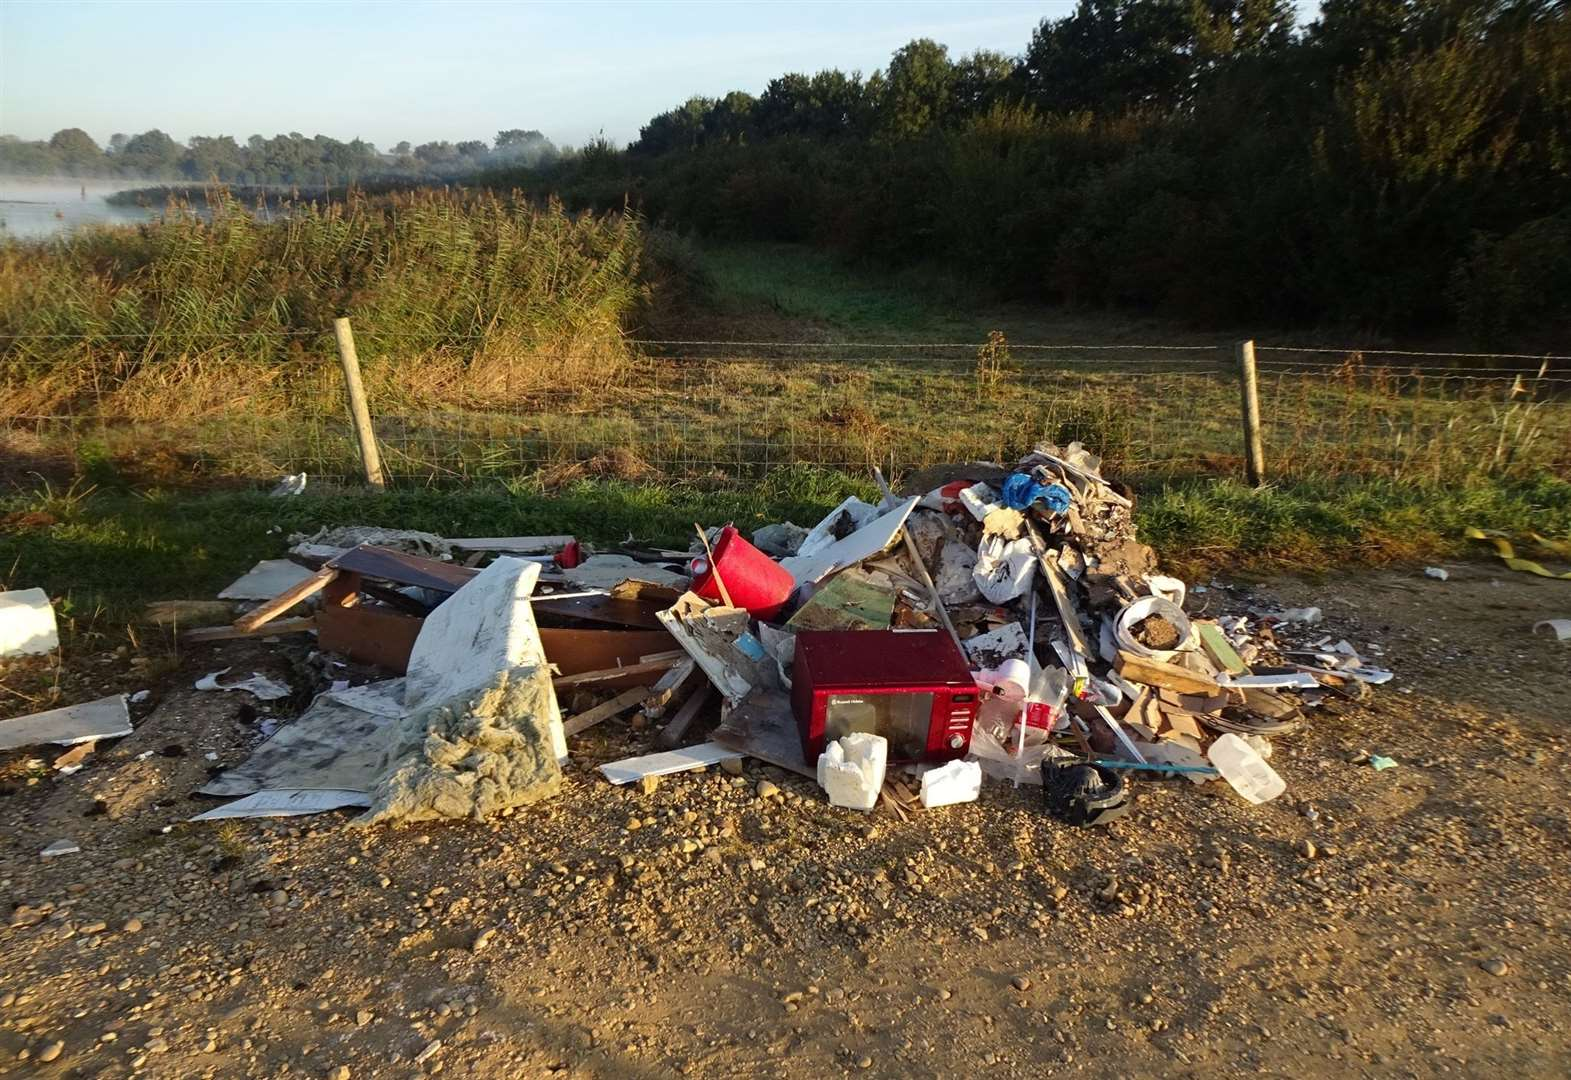 Anguish over fly tipping at beauty spot